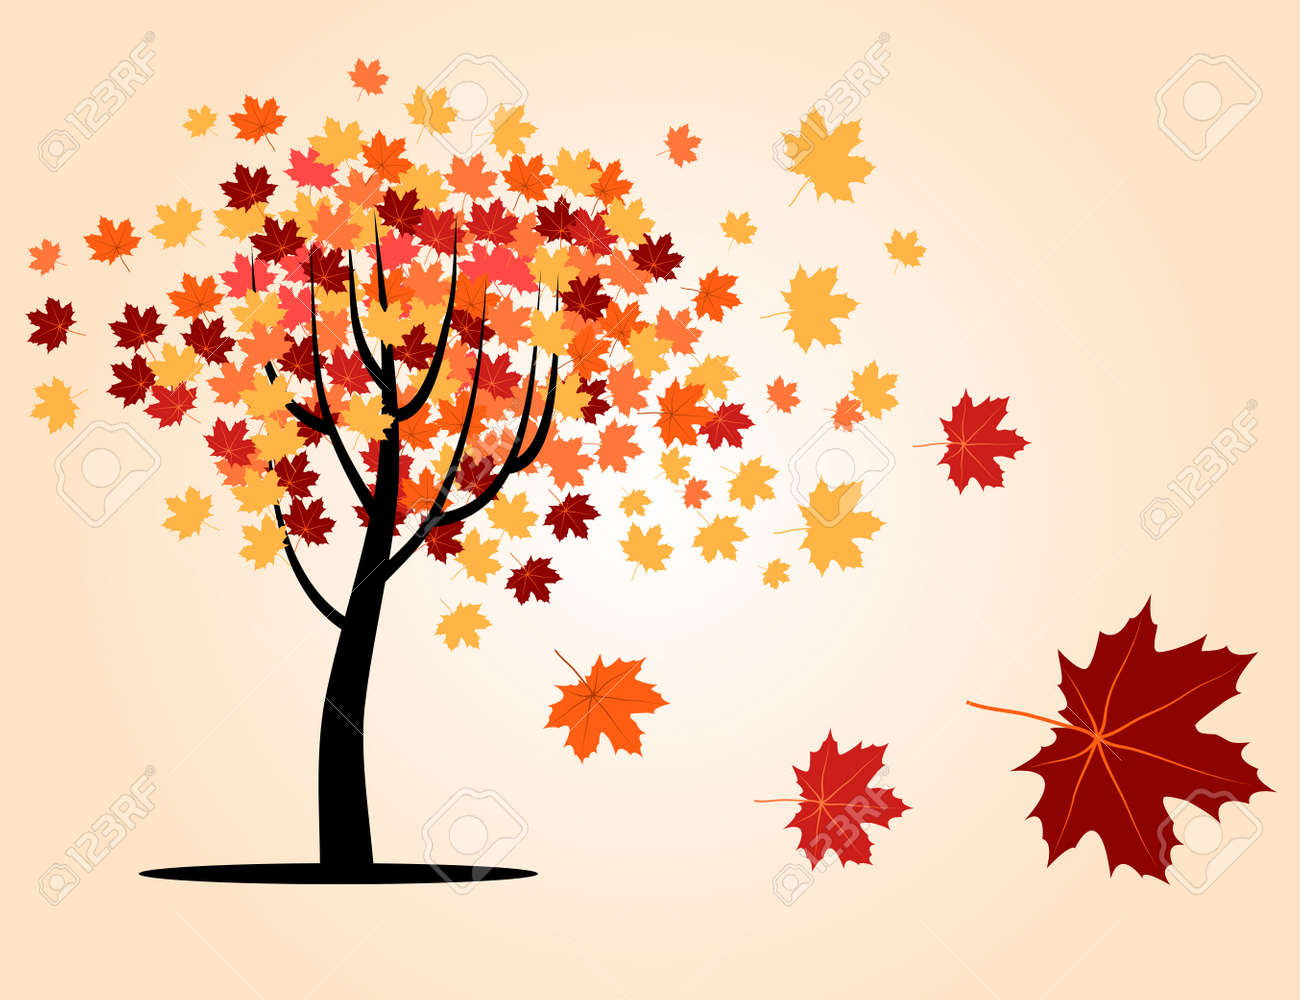 Autumn Maple Tree With Falling Leaves Royalty Free Cliparts Vectors And Stock Illustration Image 16128082